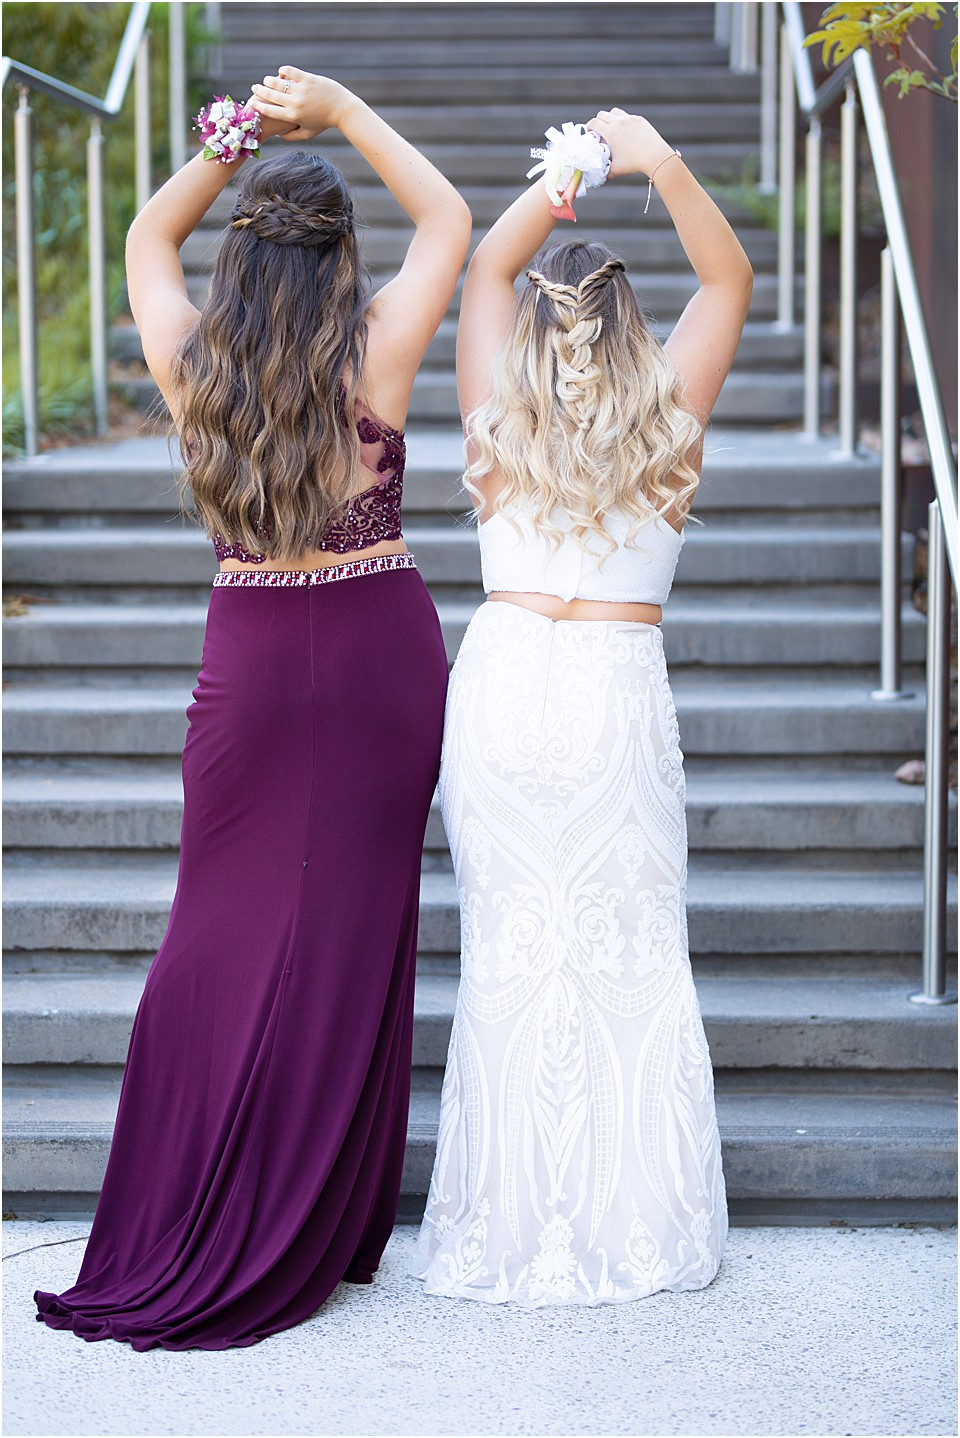 best friends senior prom picture ideas